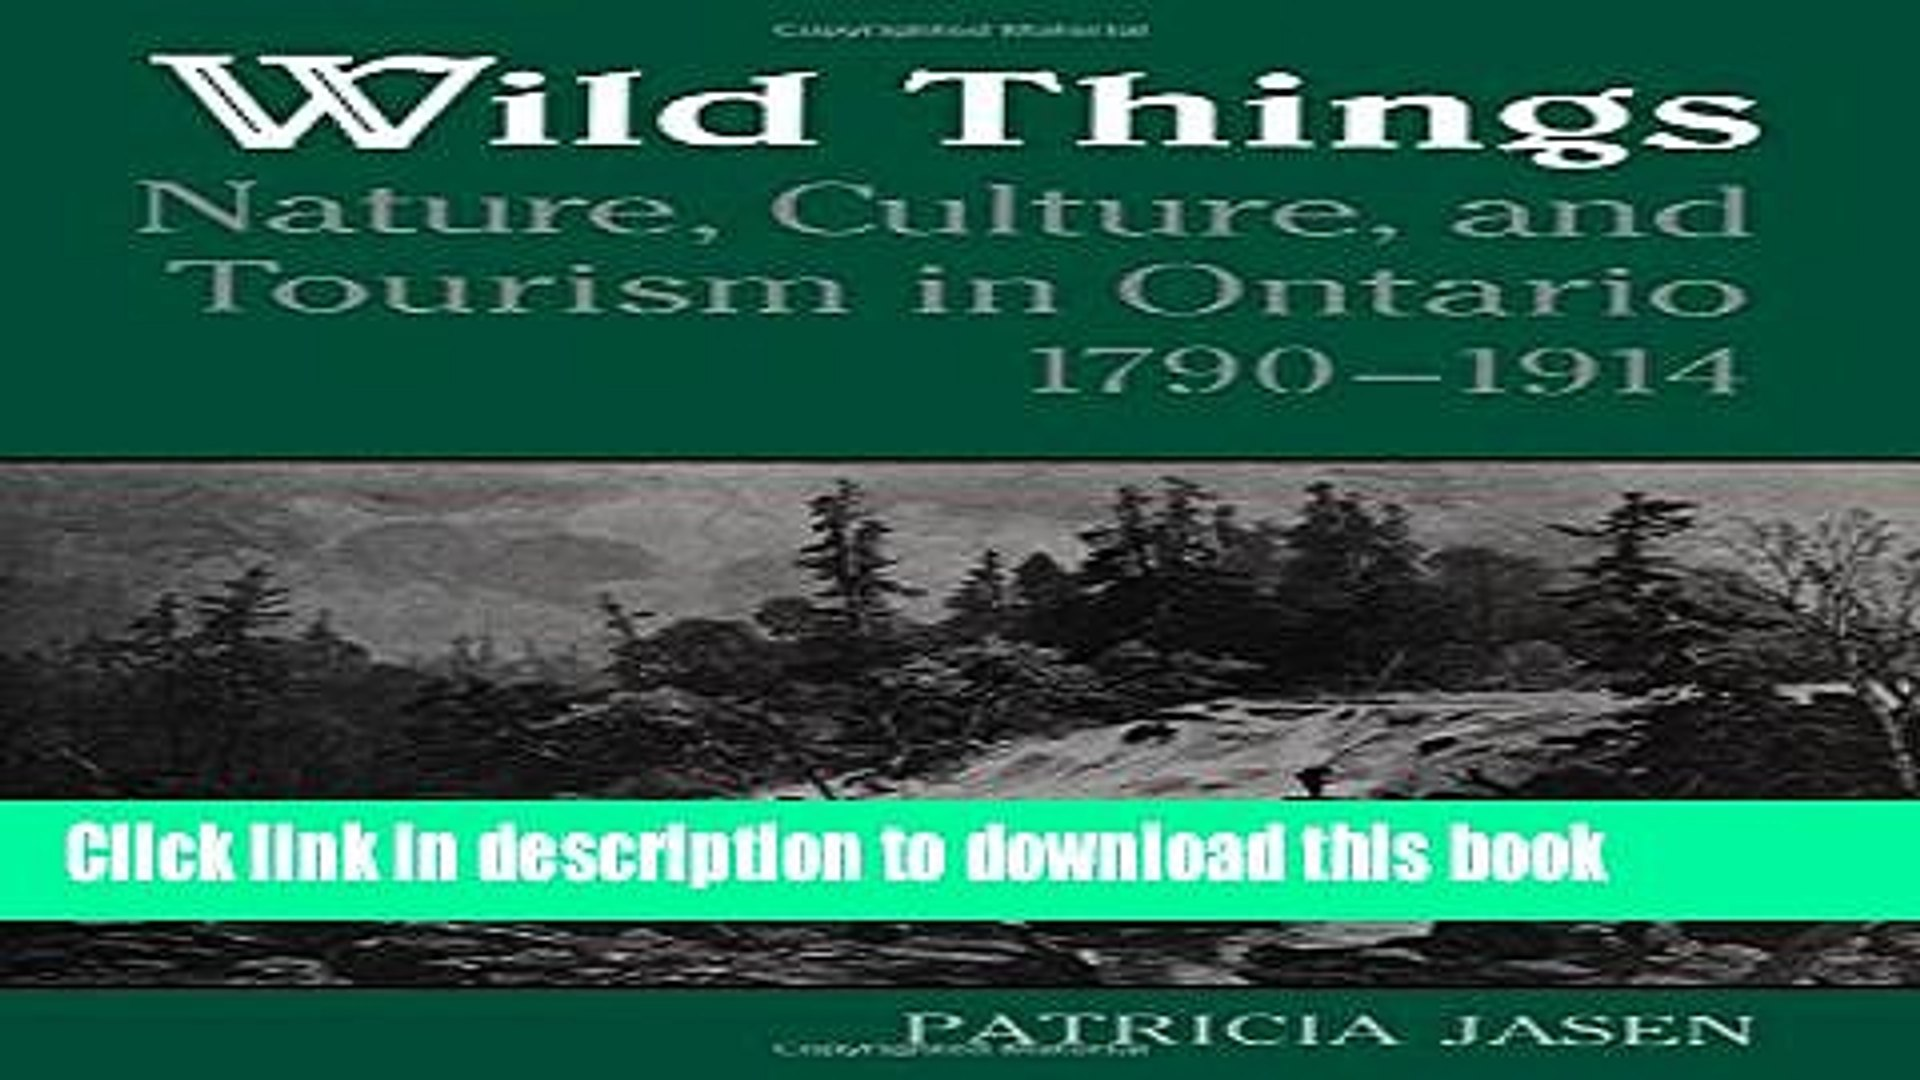 Books Wild Things: Nature, Culture, and Tourism in Ontario, 1790-1914 Free Online